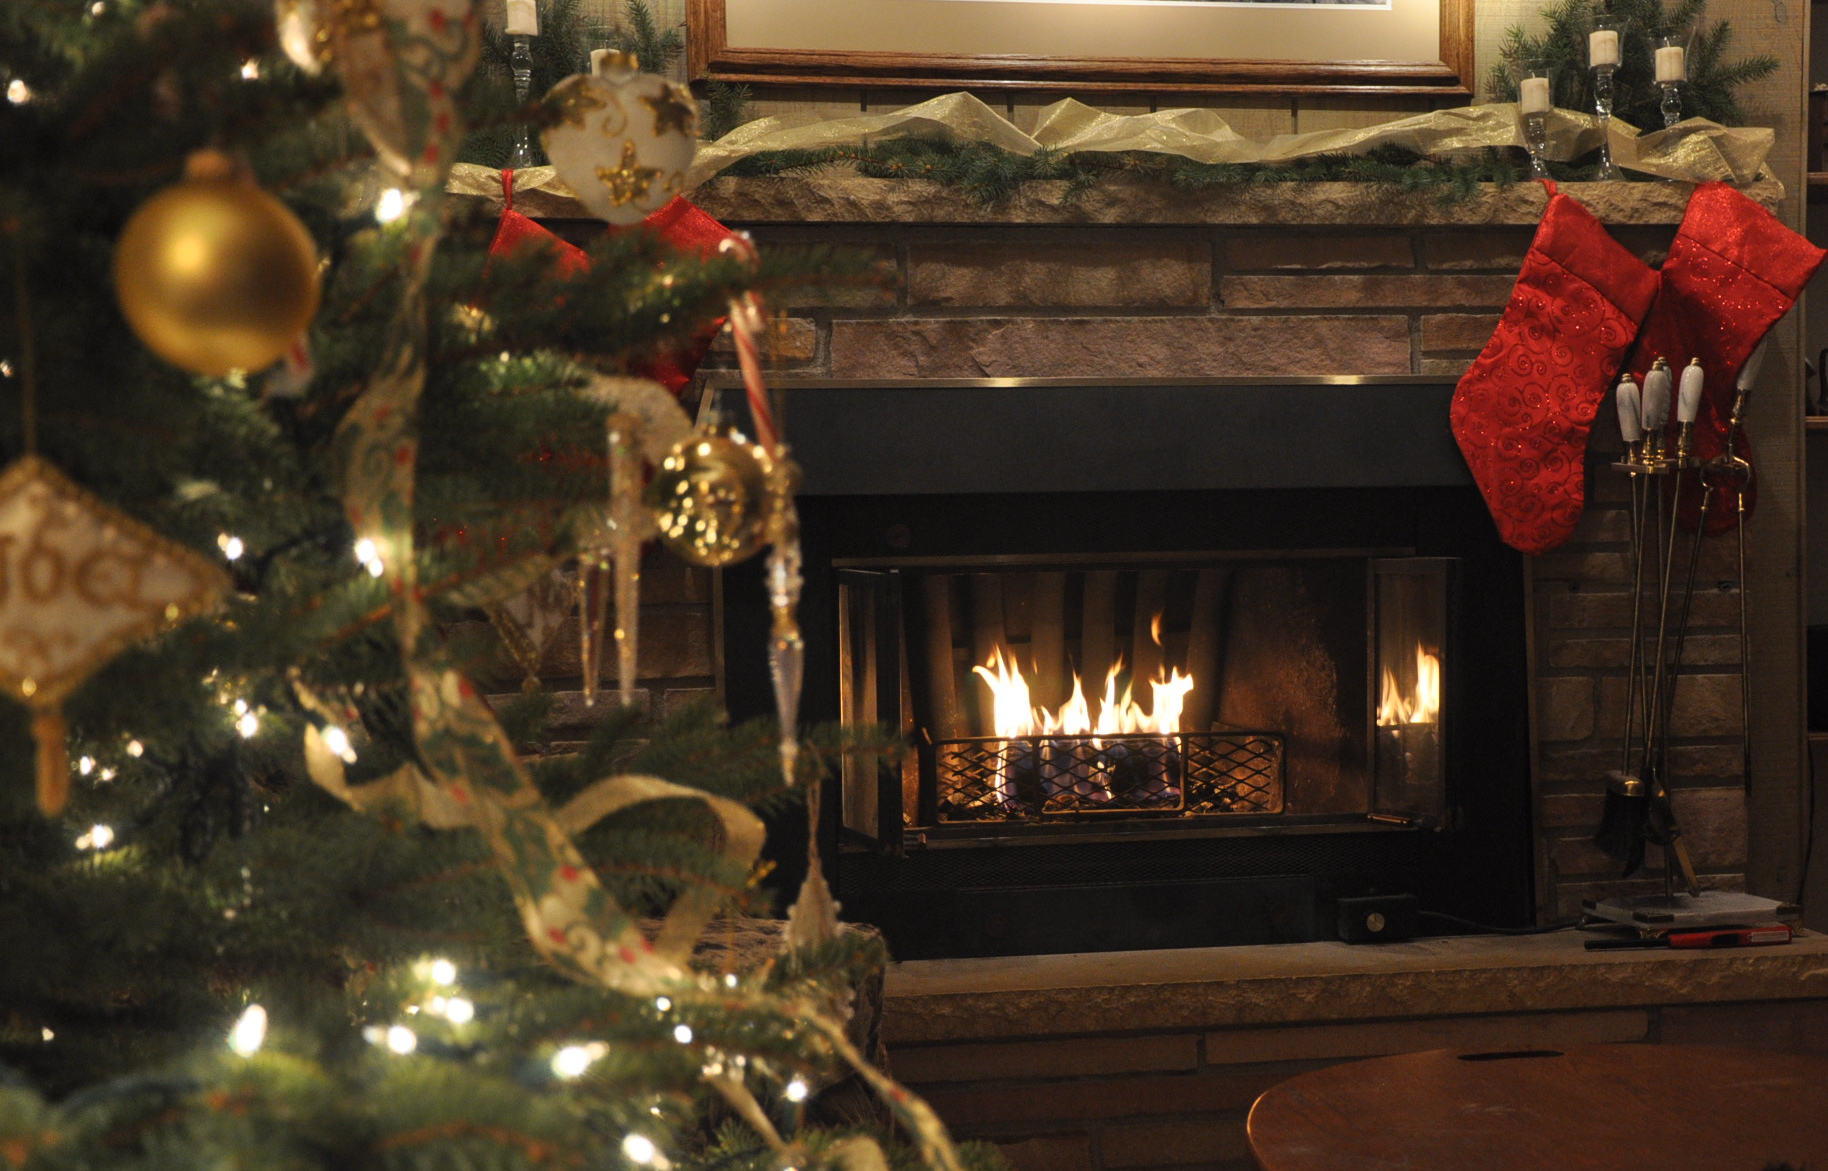 December Adding Value And Leadership To Those Around Me - Christmas cabin fireplace scenes